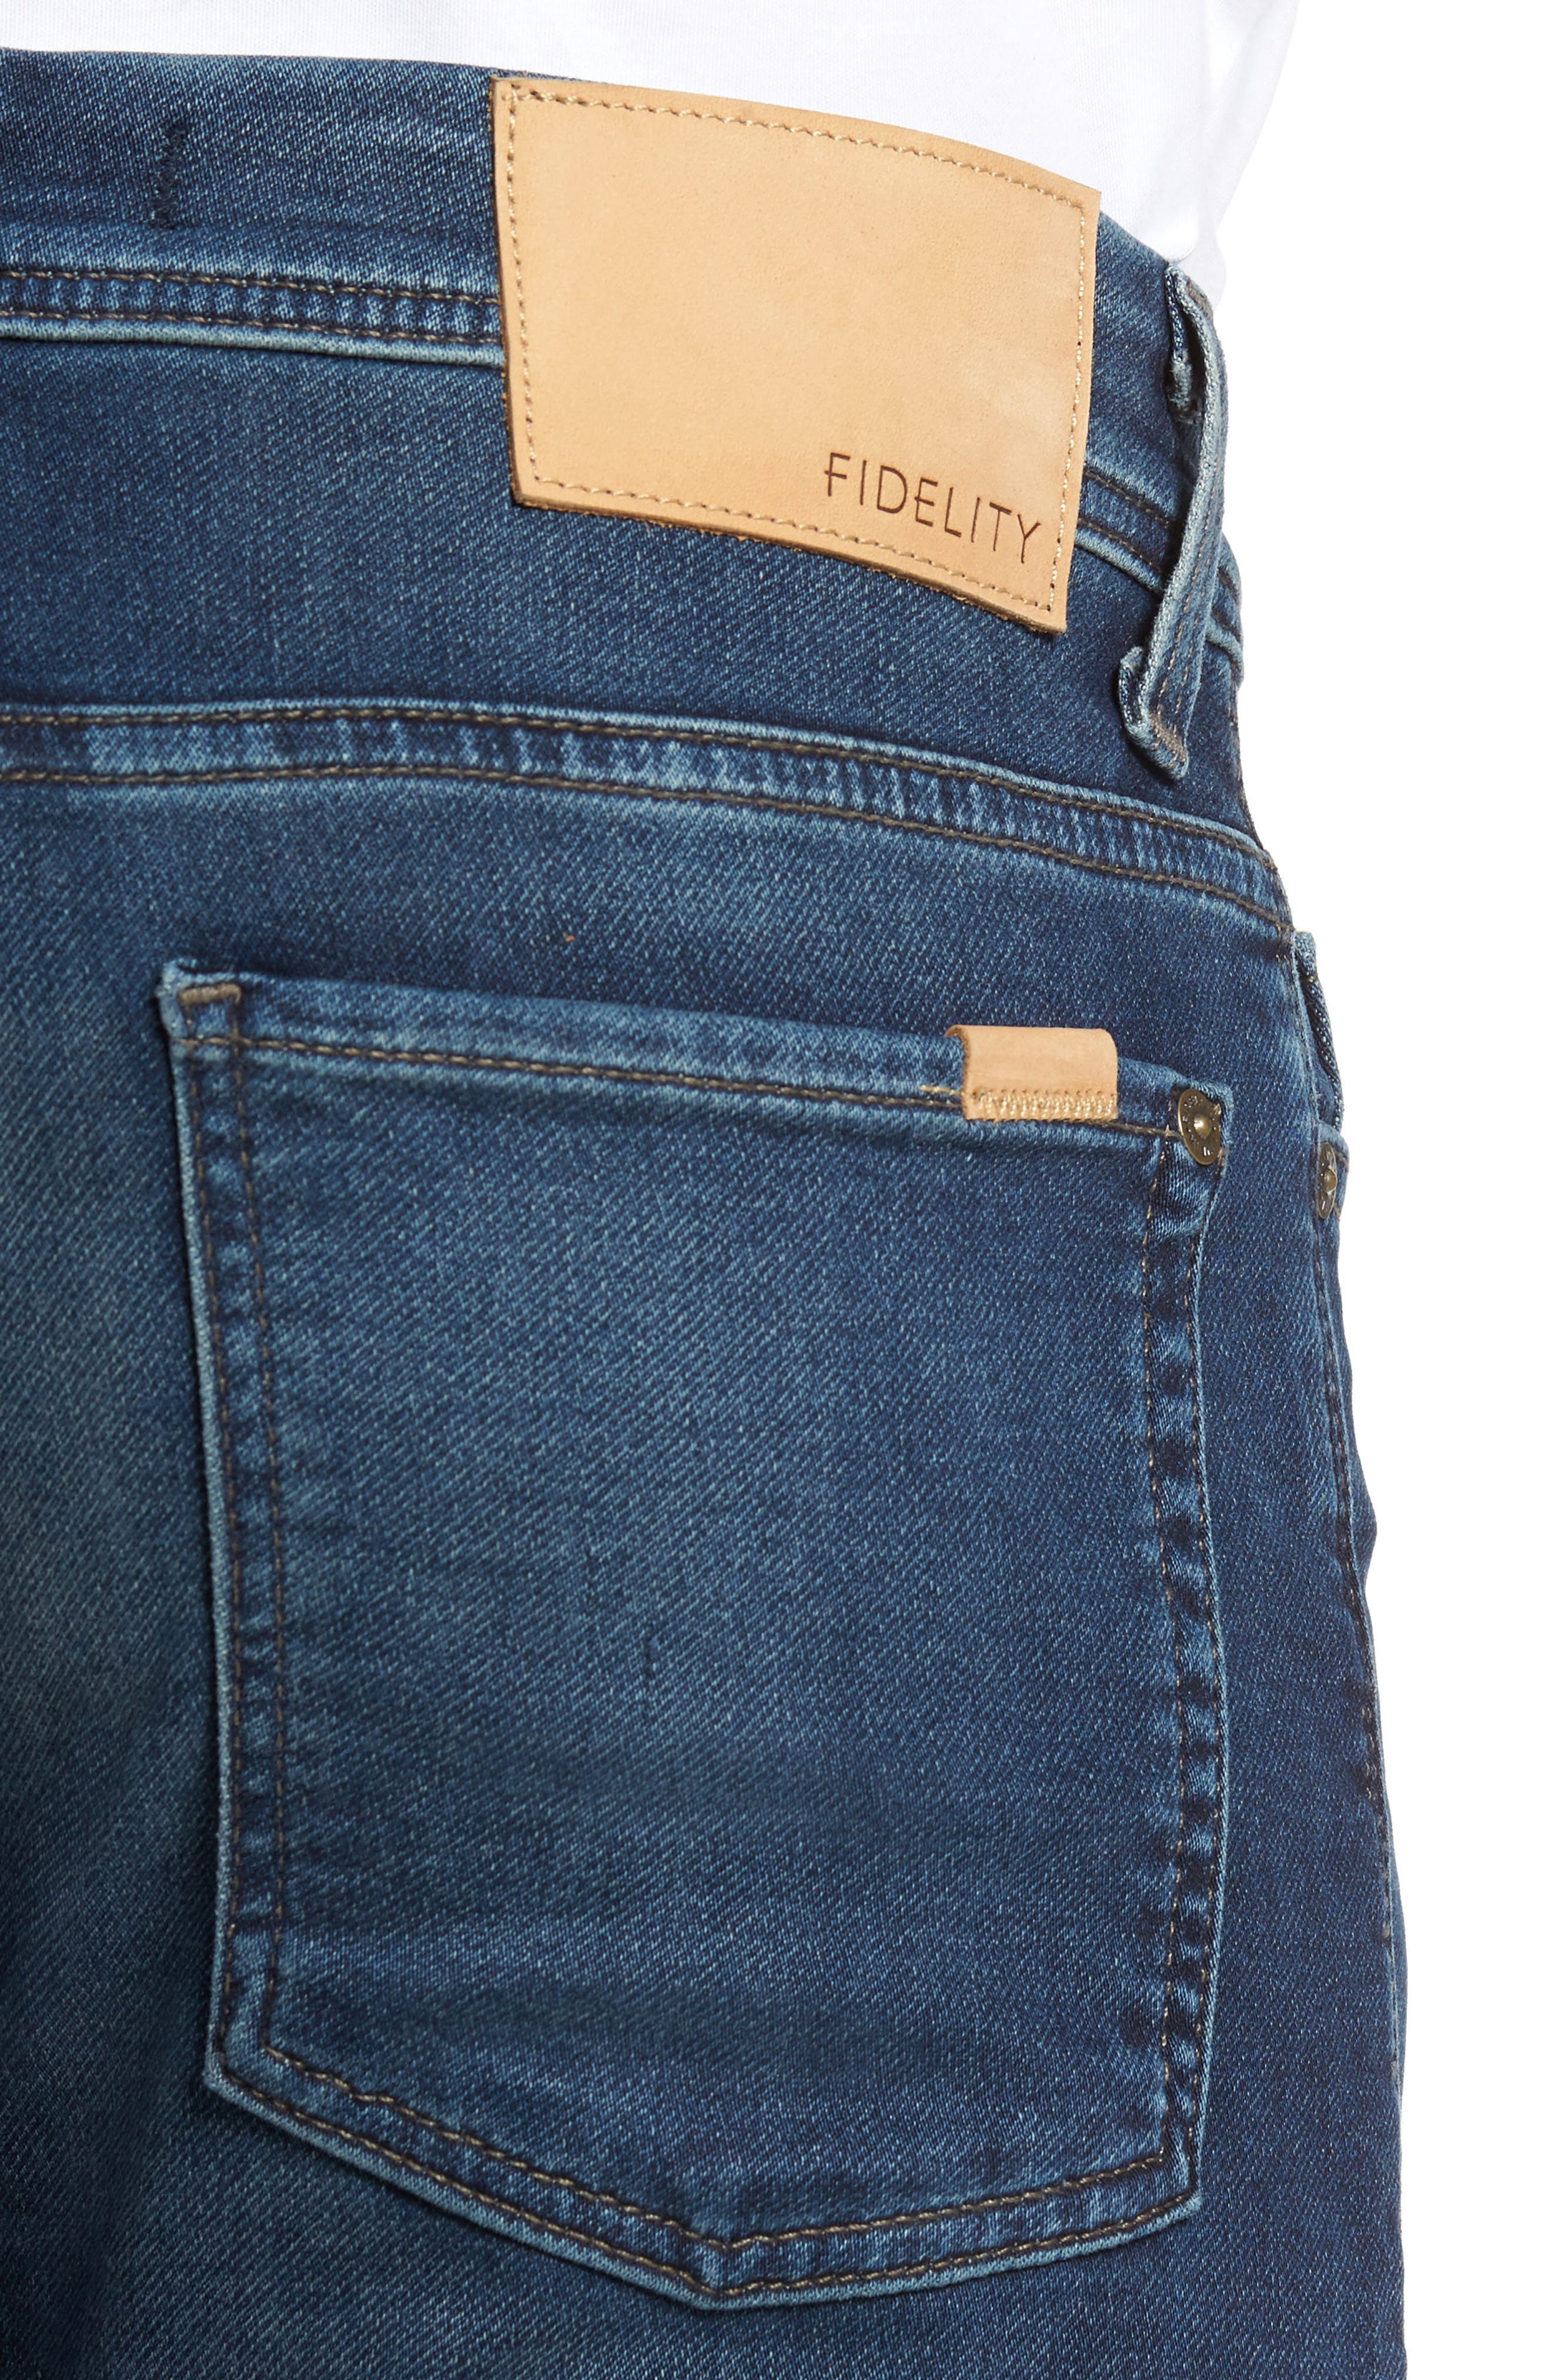 Jimmy Slim Straight Leg Jeans,                             Alternate thumbnail 4, color,                             Talk About Blue